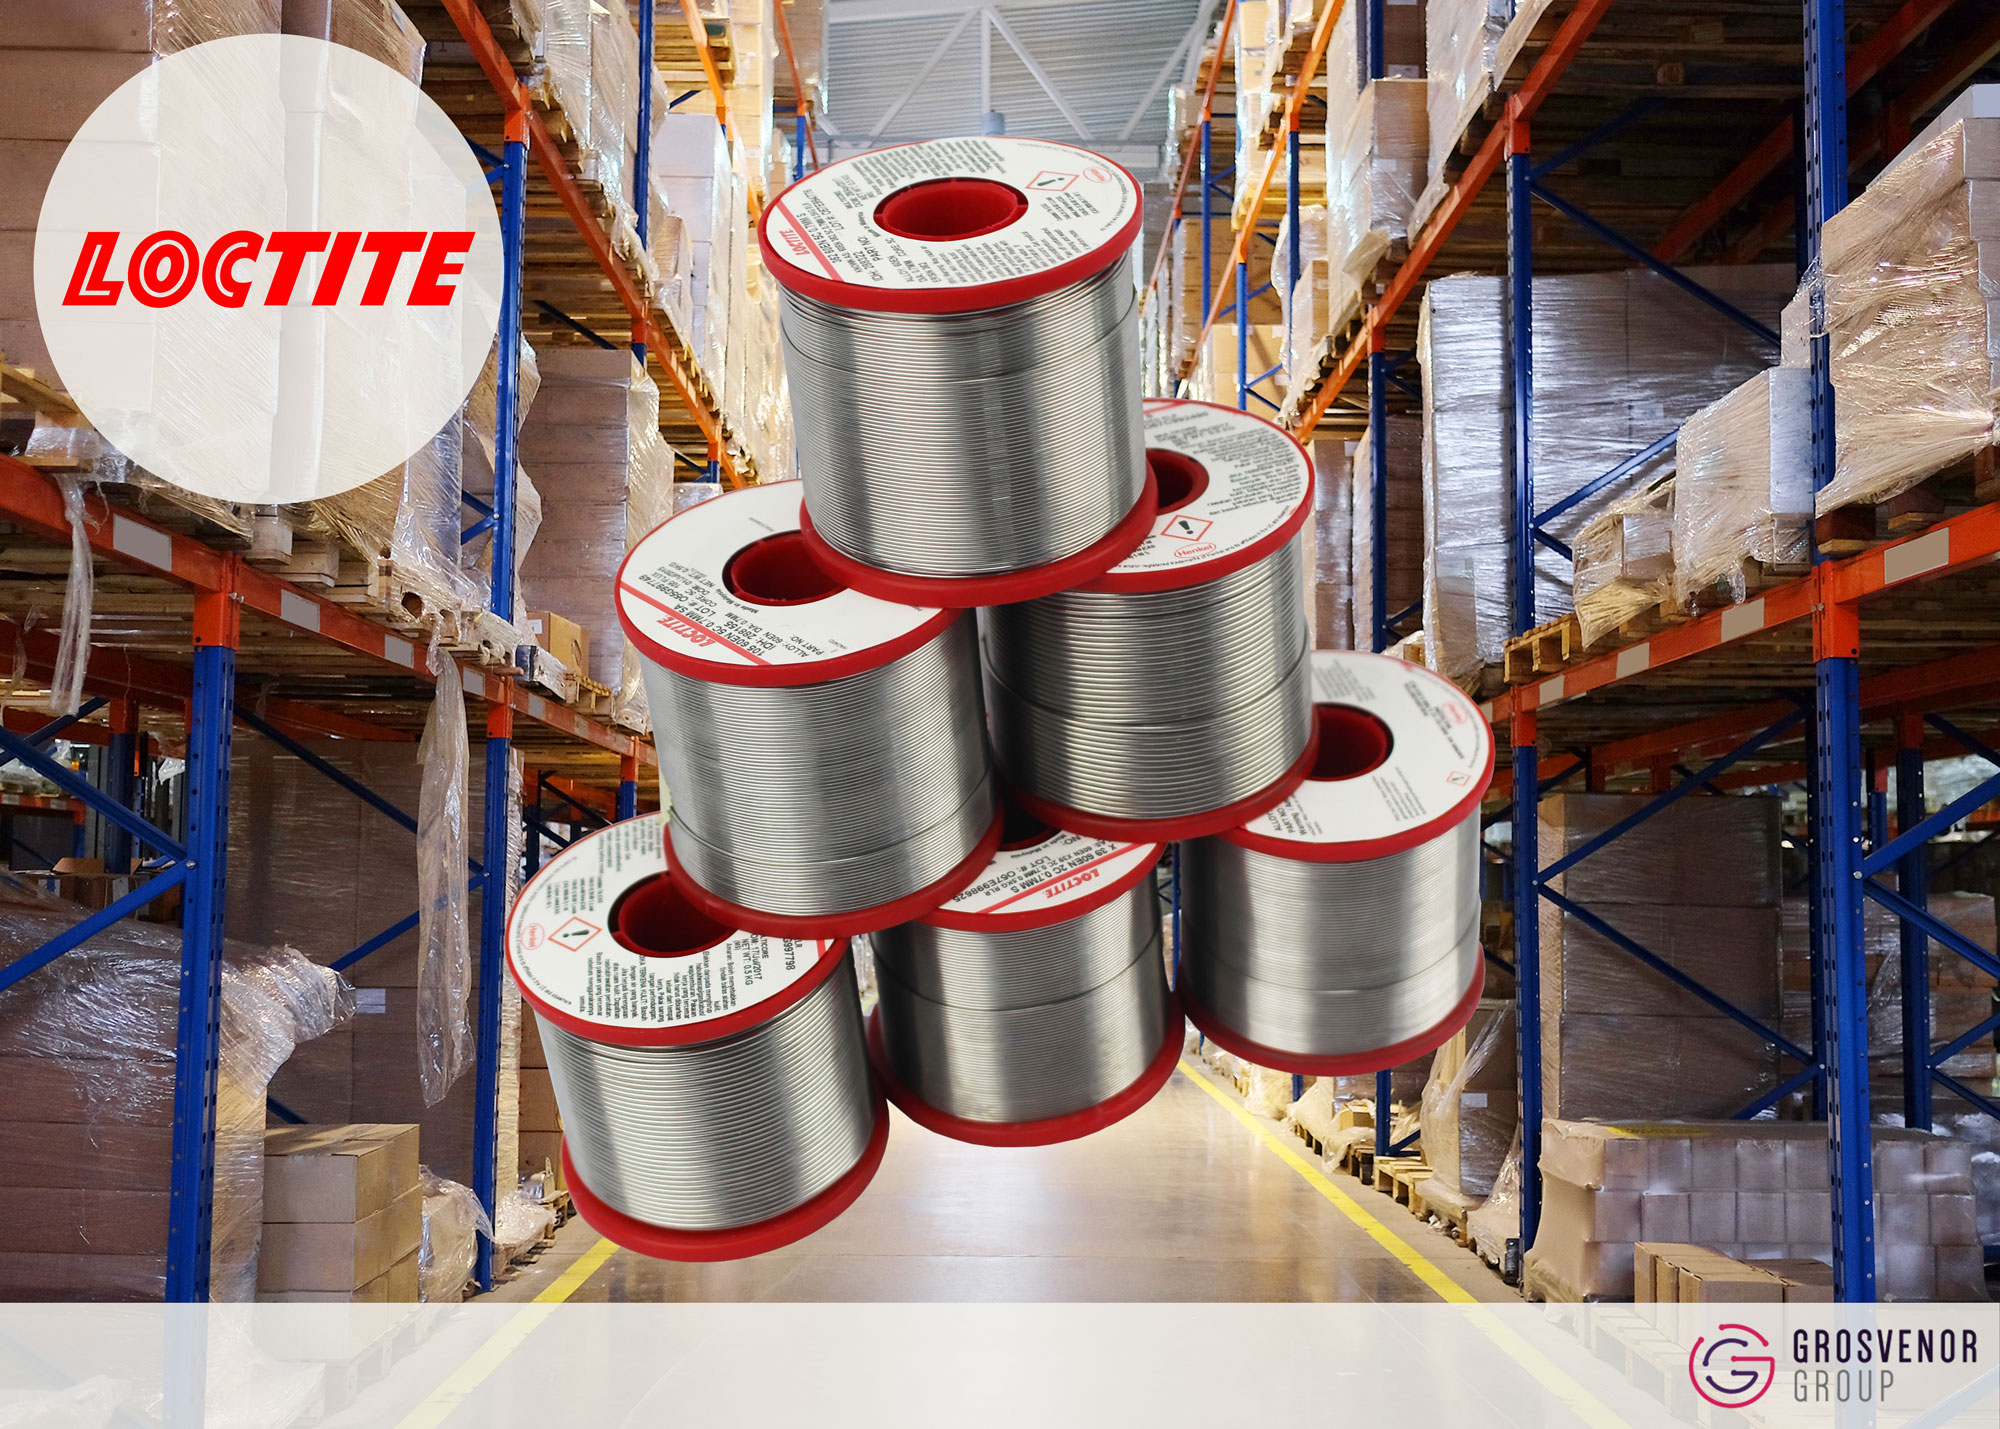 Official Distributors of Loctite